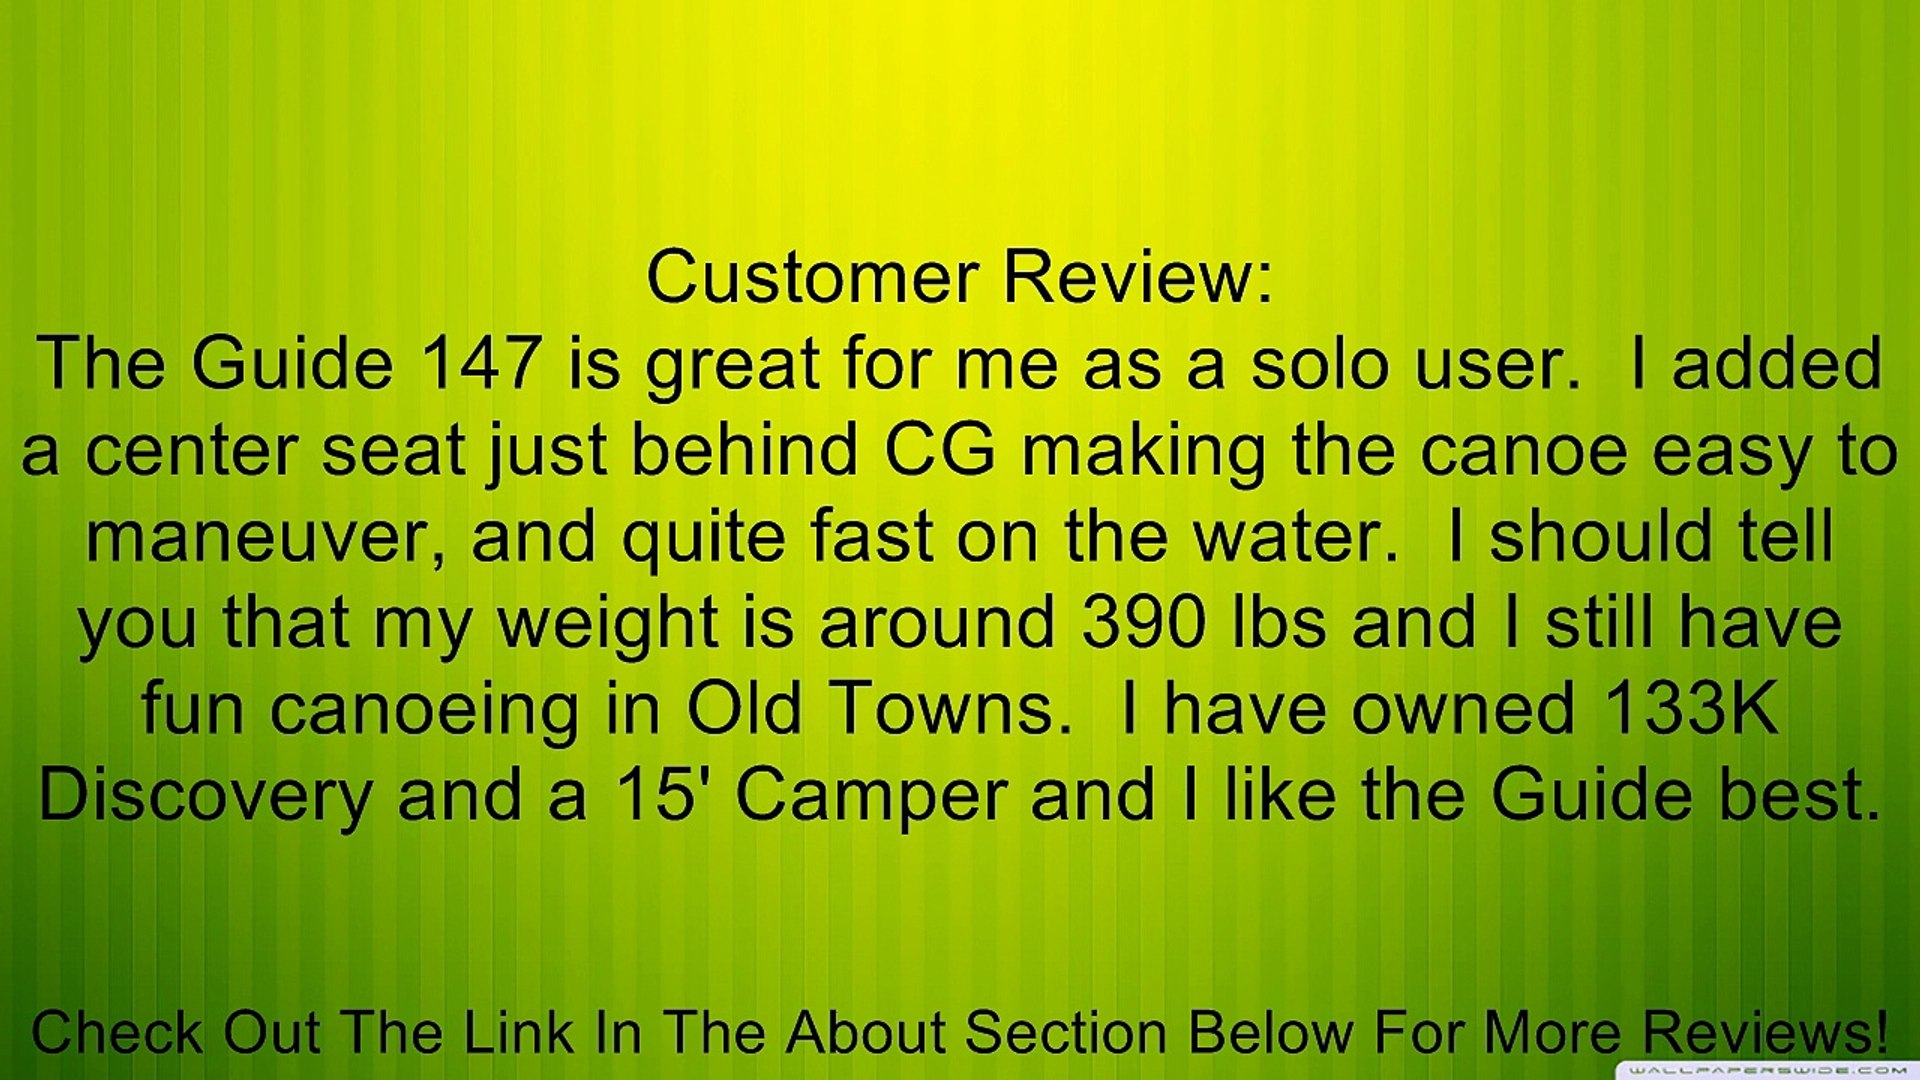 Old Town Guide 147 Recreational Canoe, 14-Feet 7-Inch Review